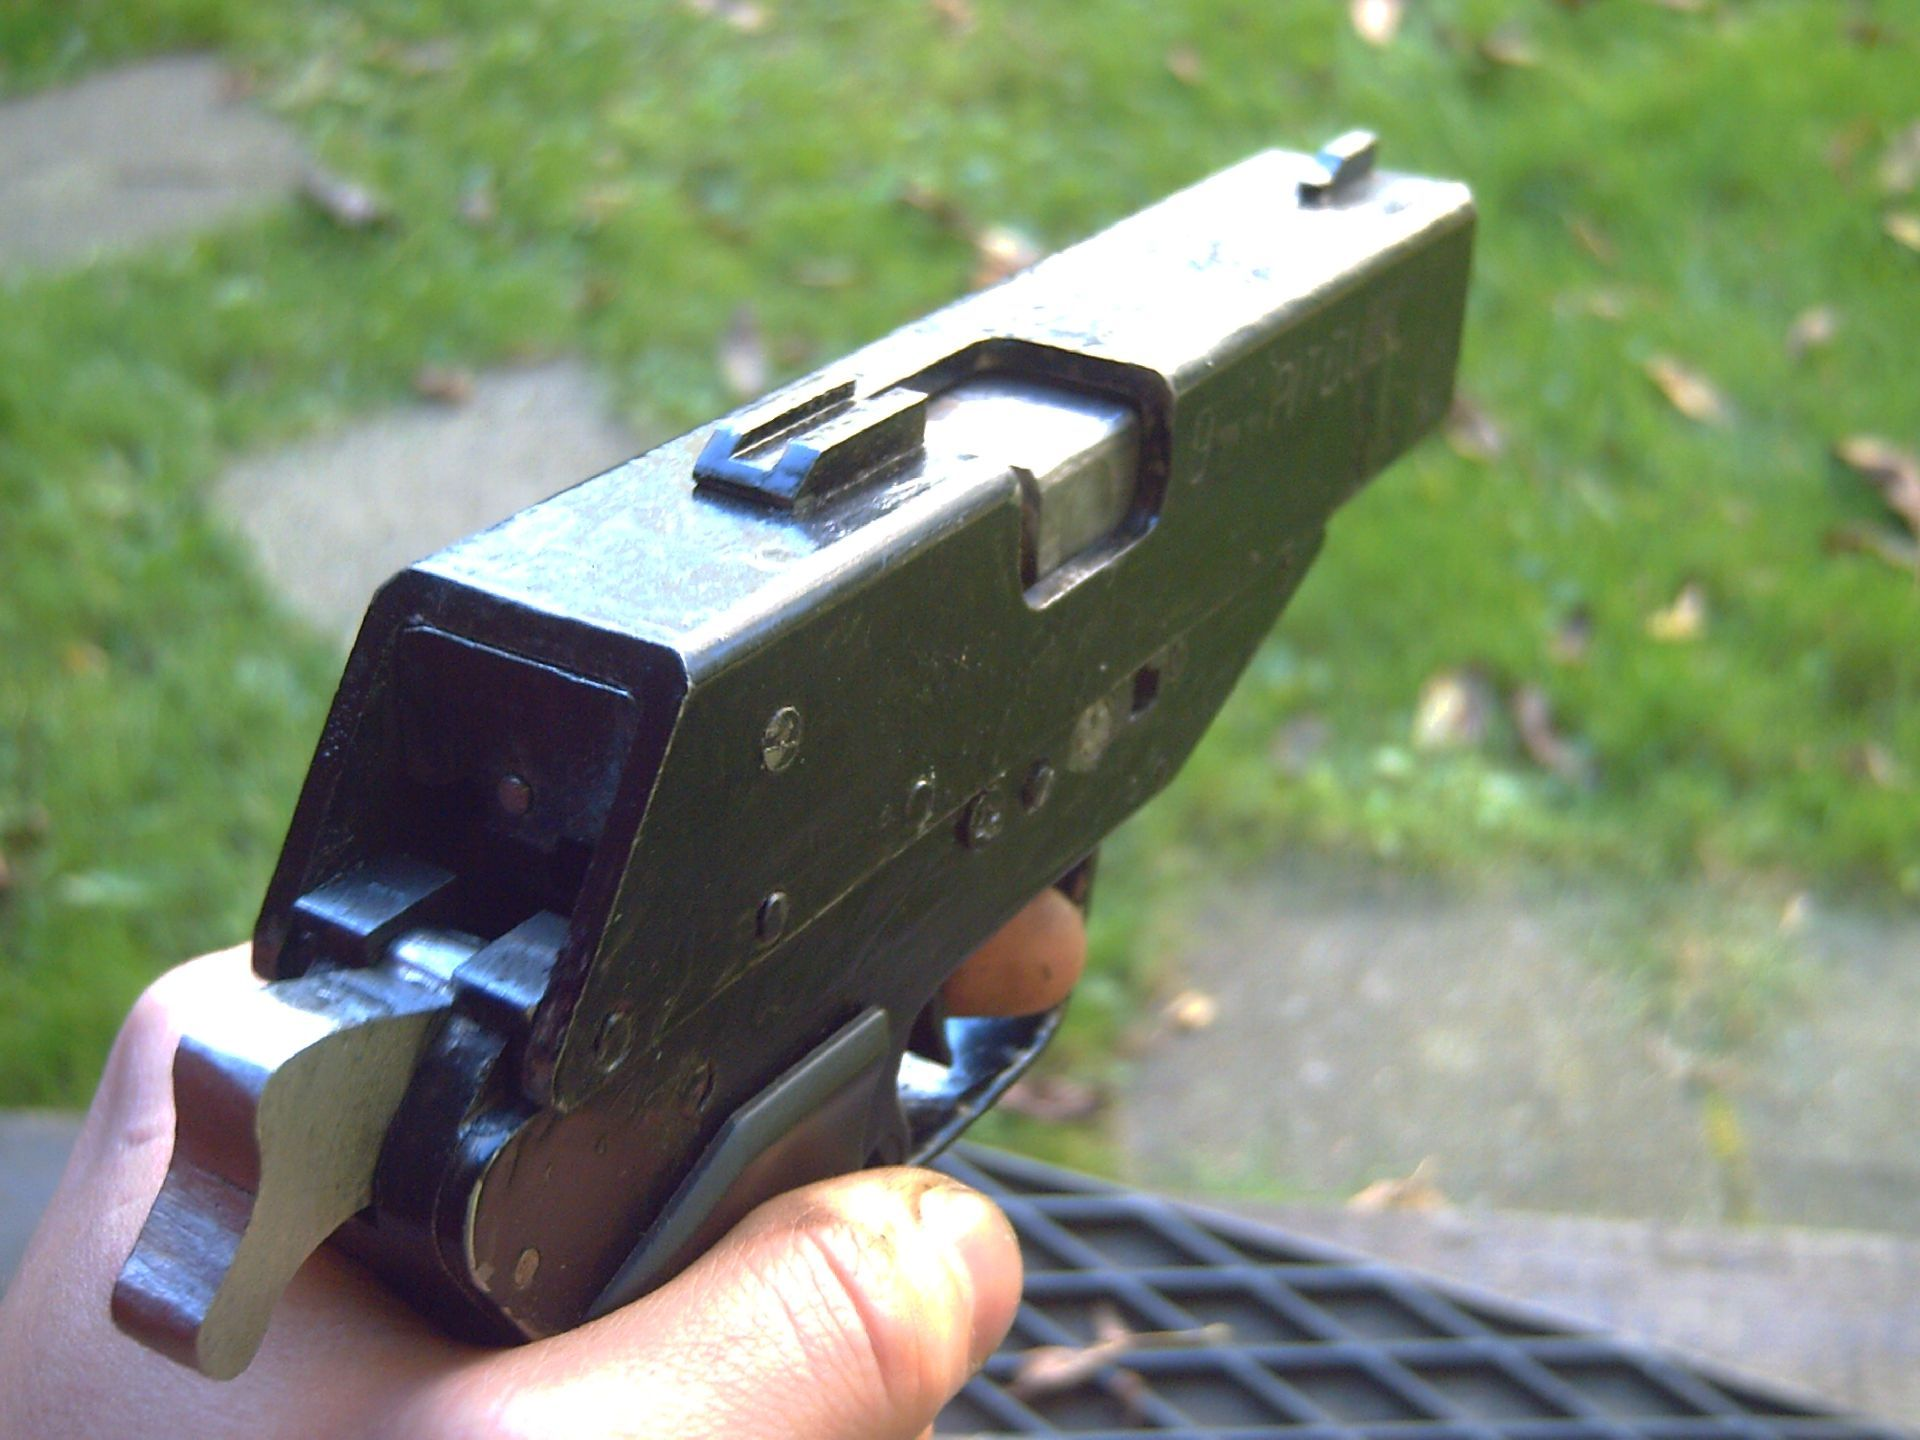 Spp 1 underwater pistol - Weaponeer Forums Pitbull A 9mm Luger Homemade Handgun